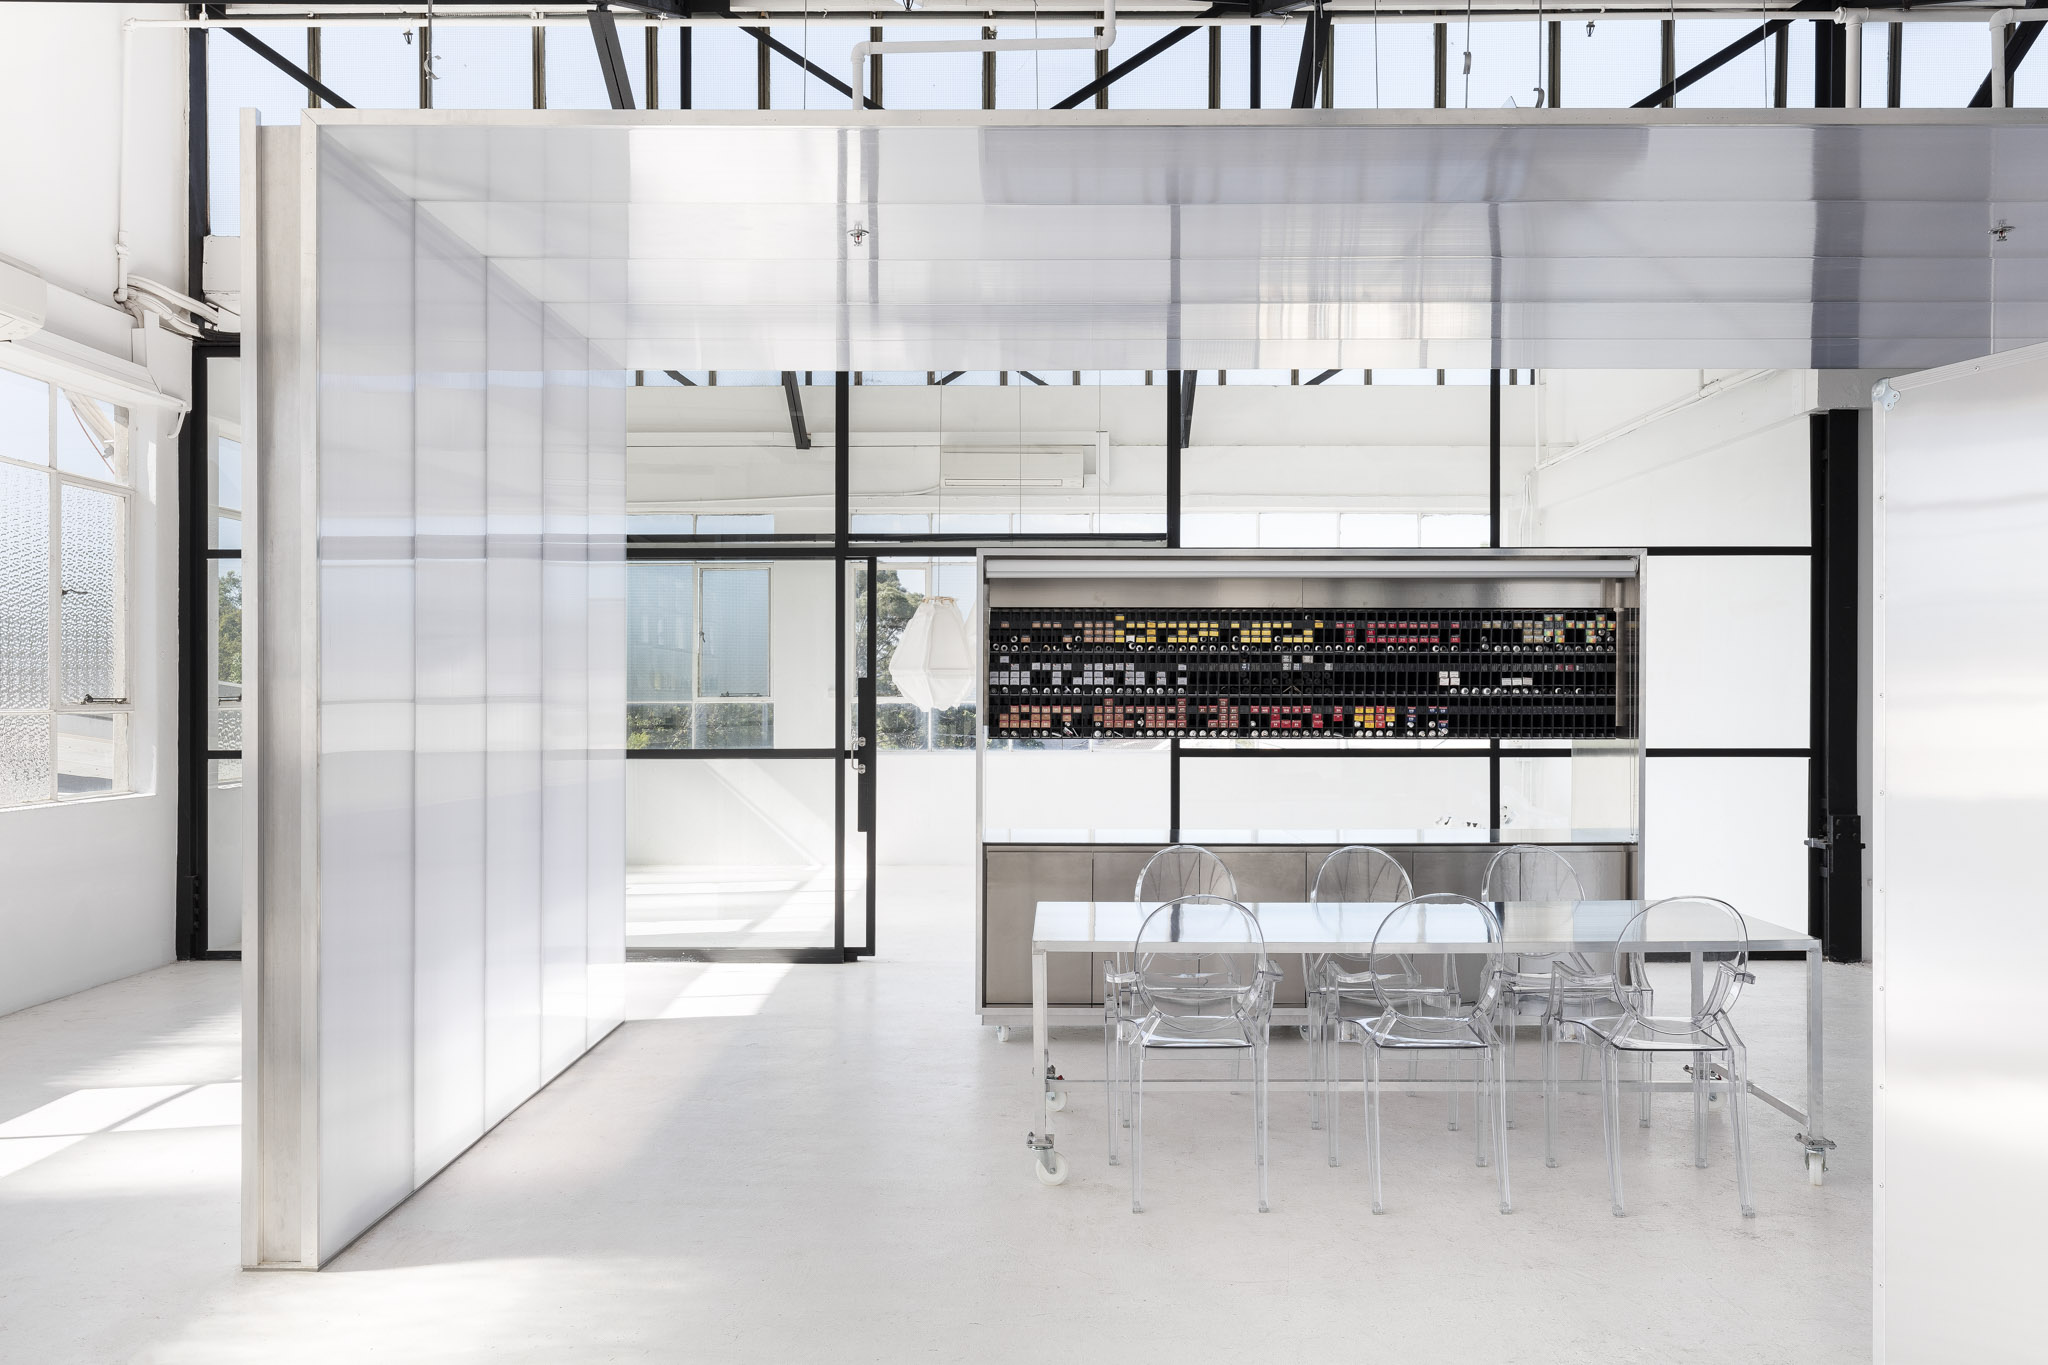 USFIN Atelier by George Livissianis